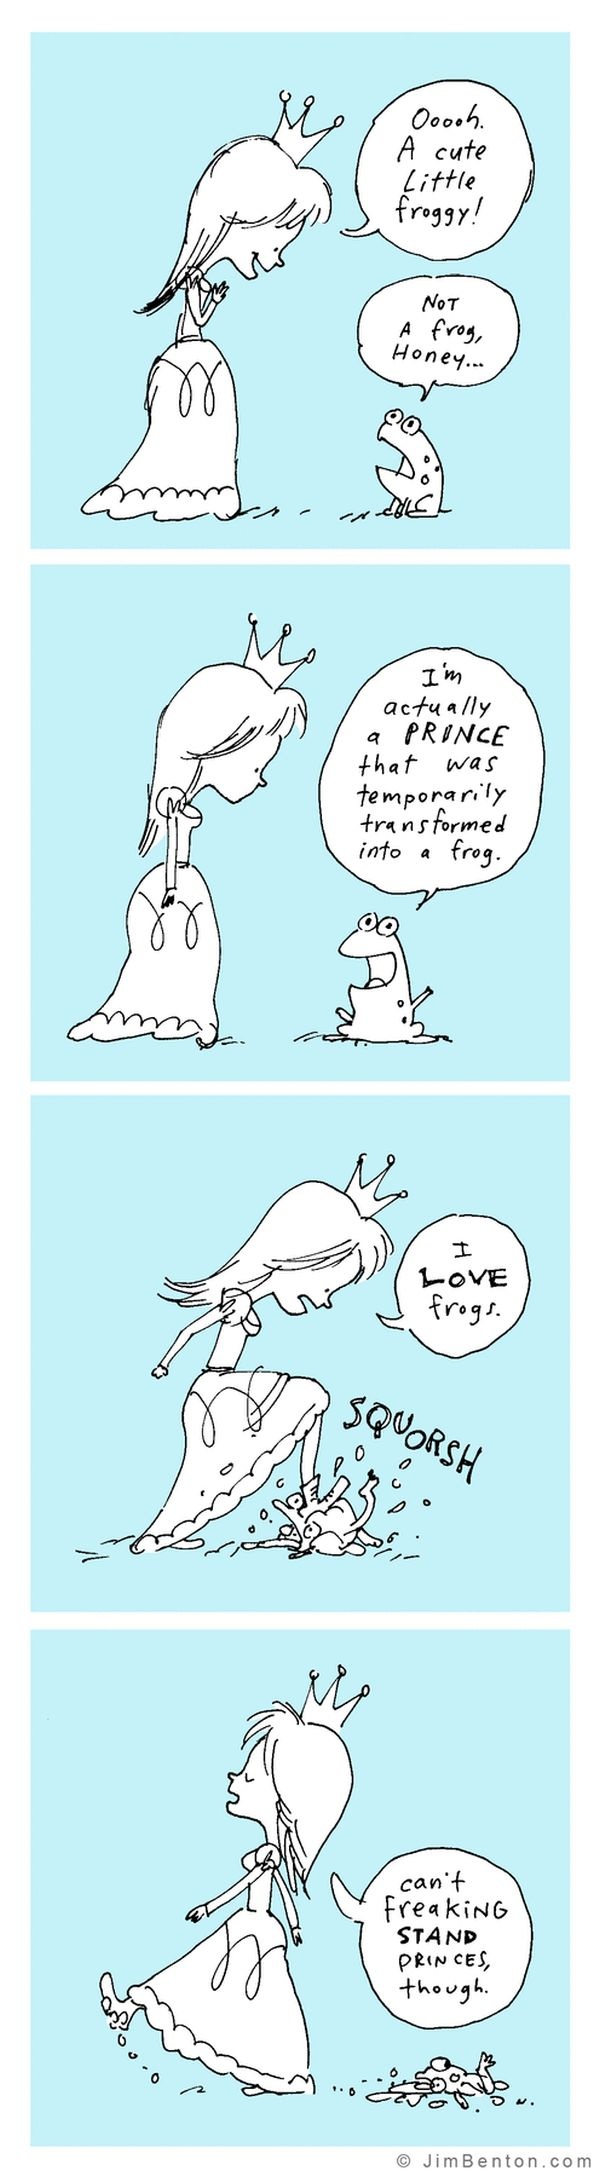 Funny Comics By Jim Benton (35 pics)